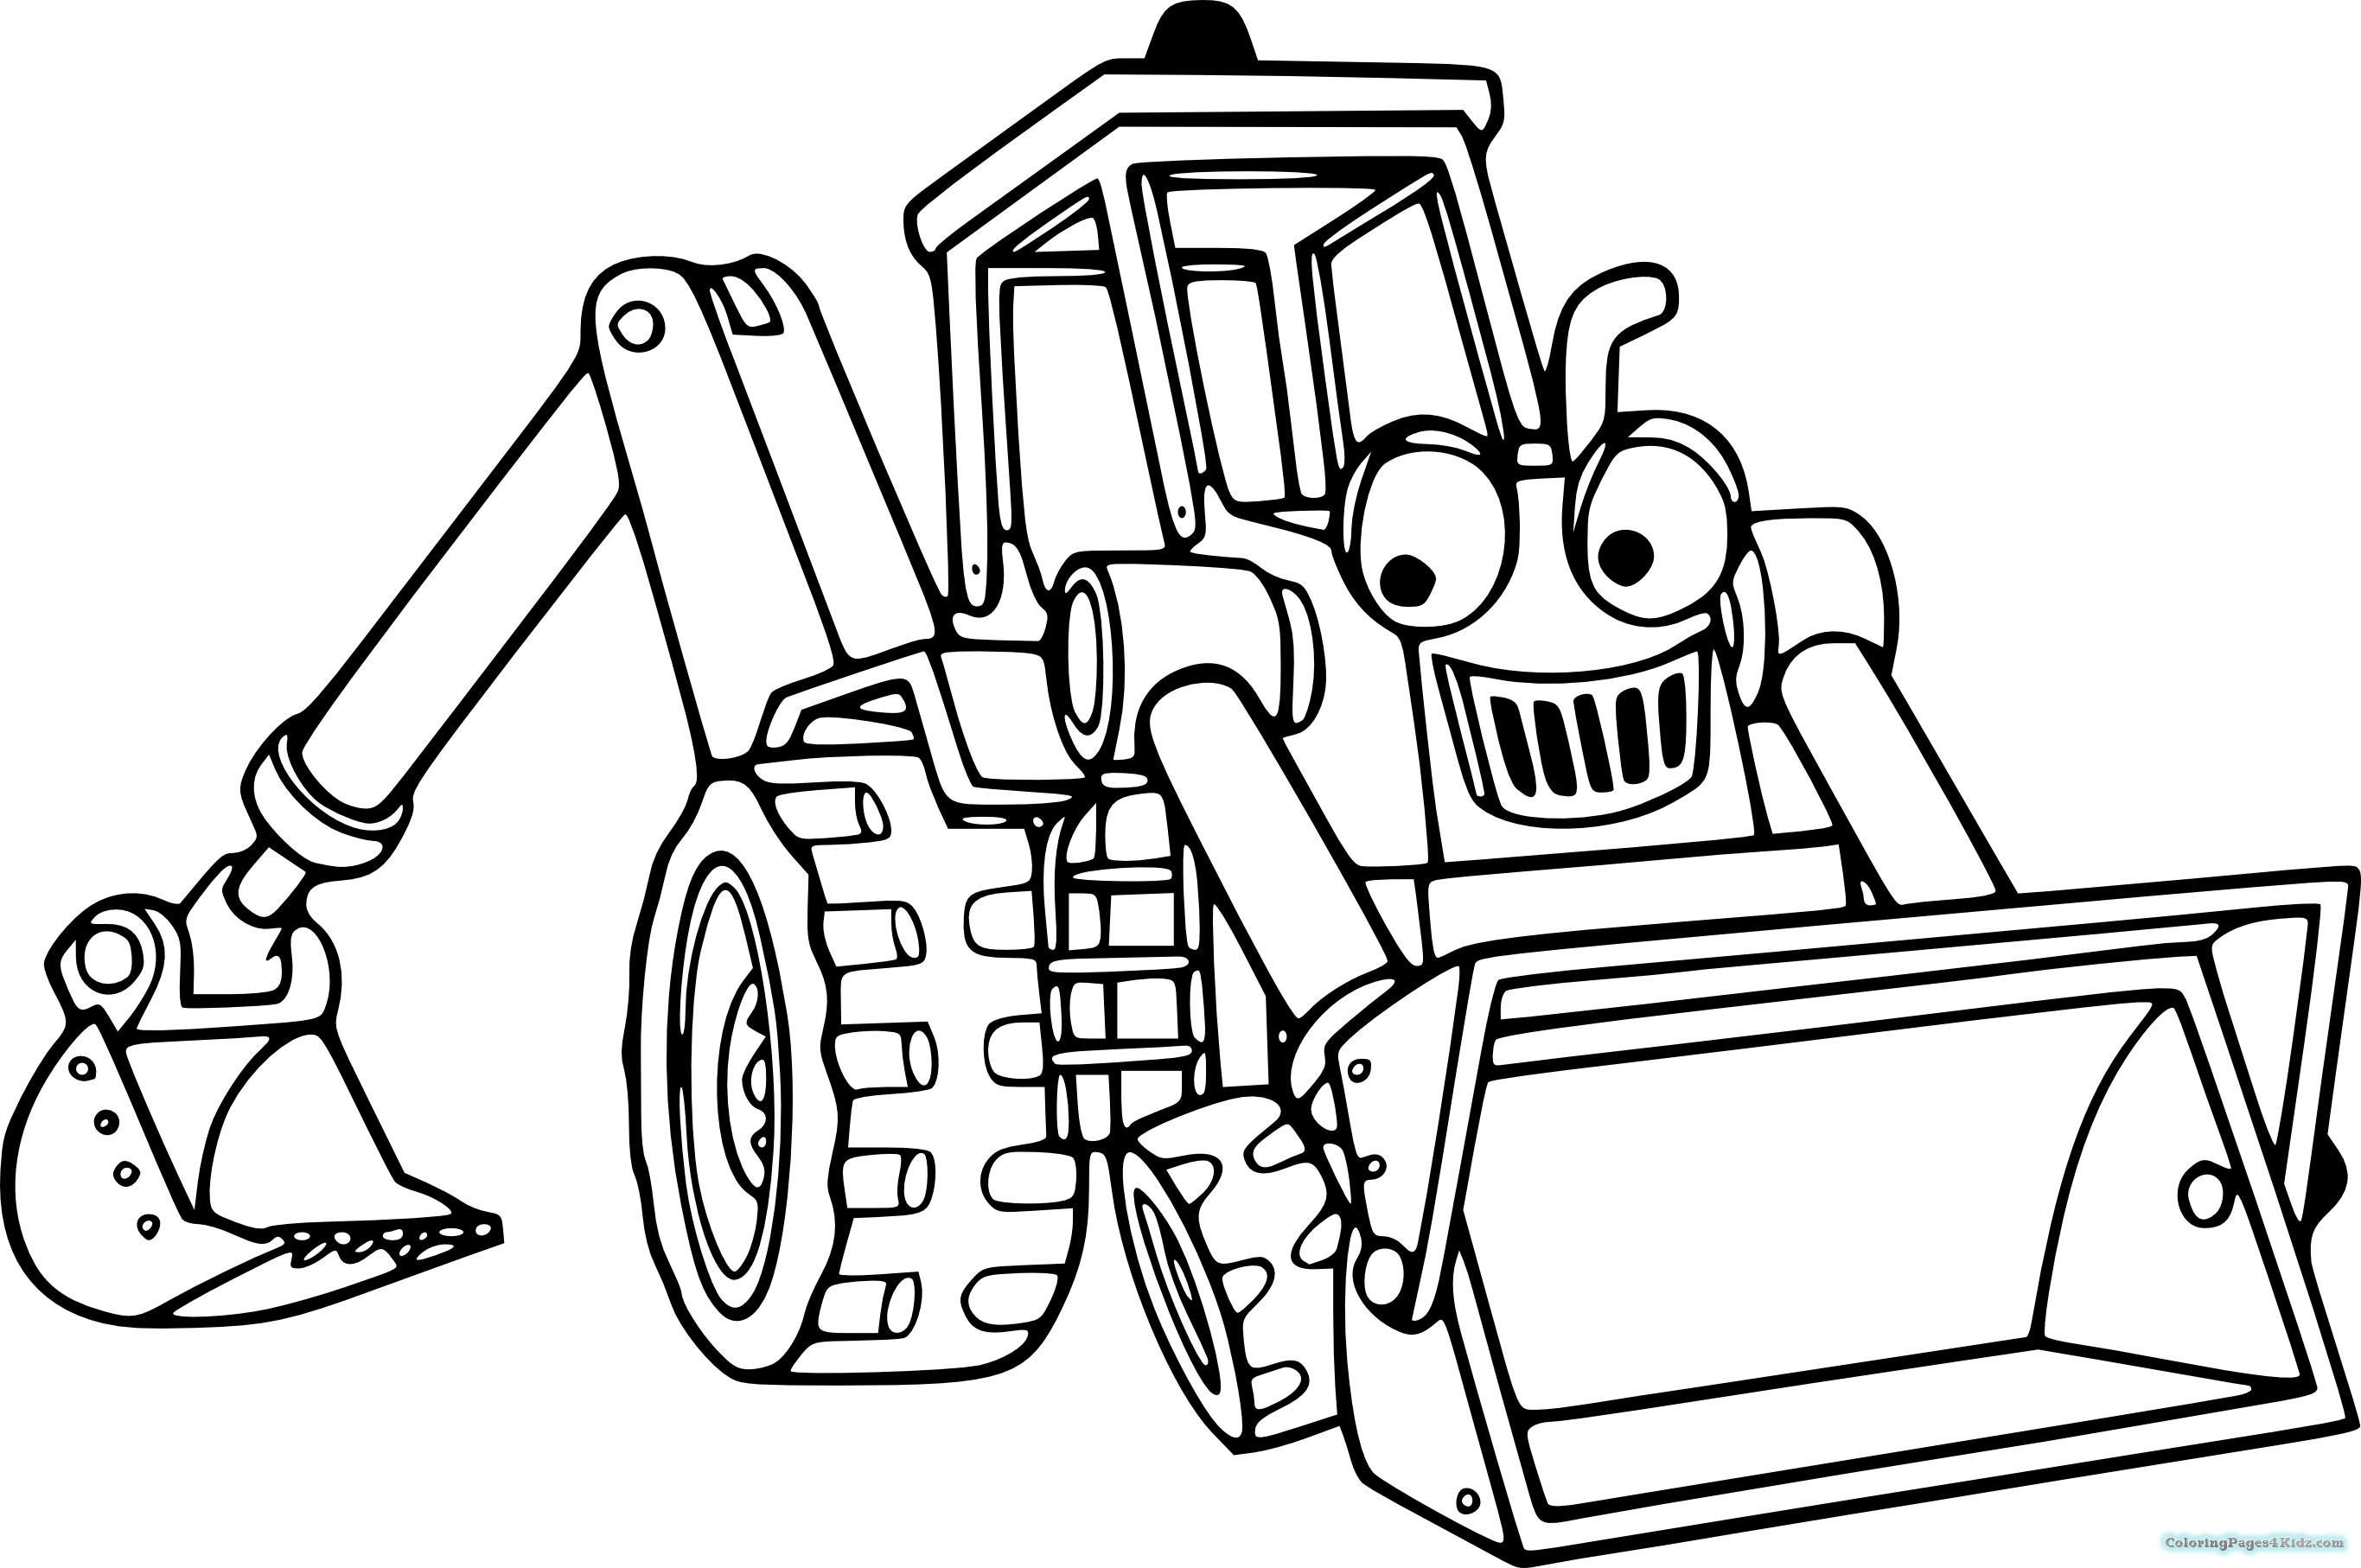 tractor coloring page john deere tractor coloring pages to print at getcolorings tractor coloring page